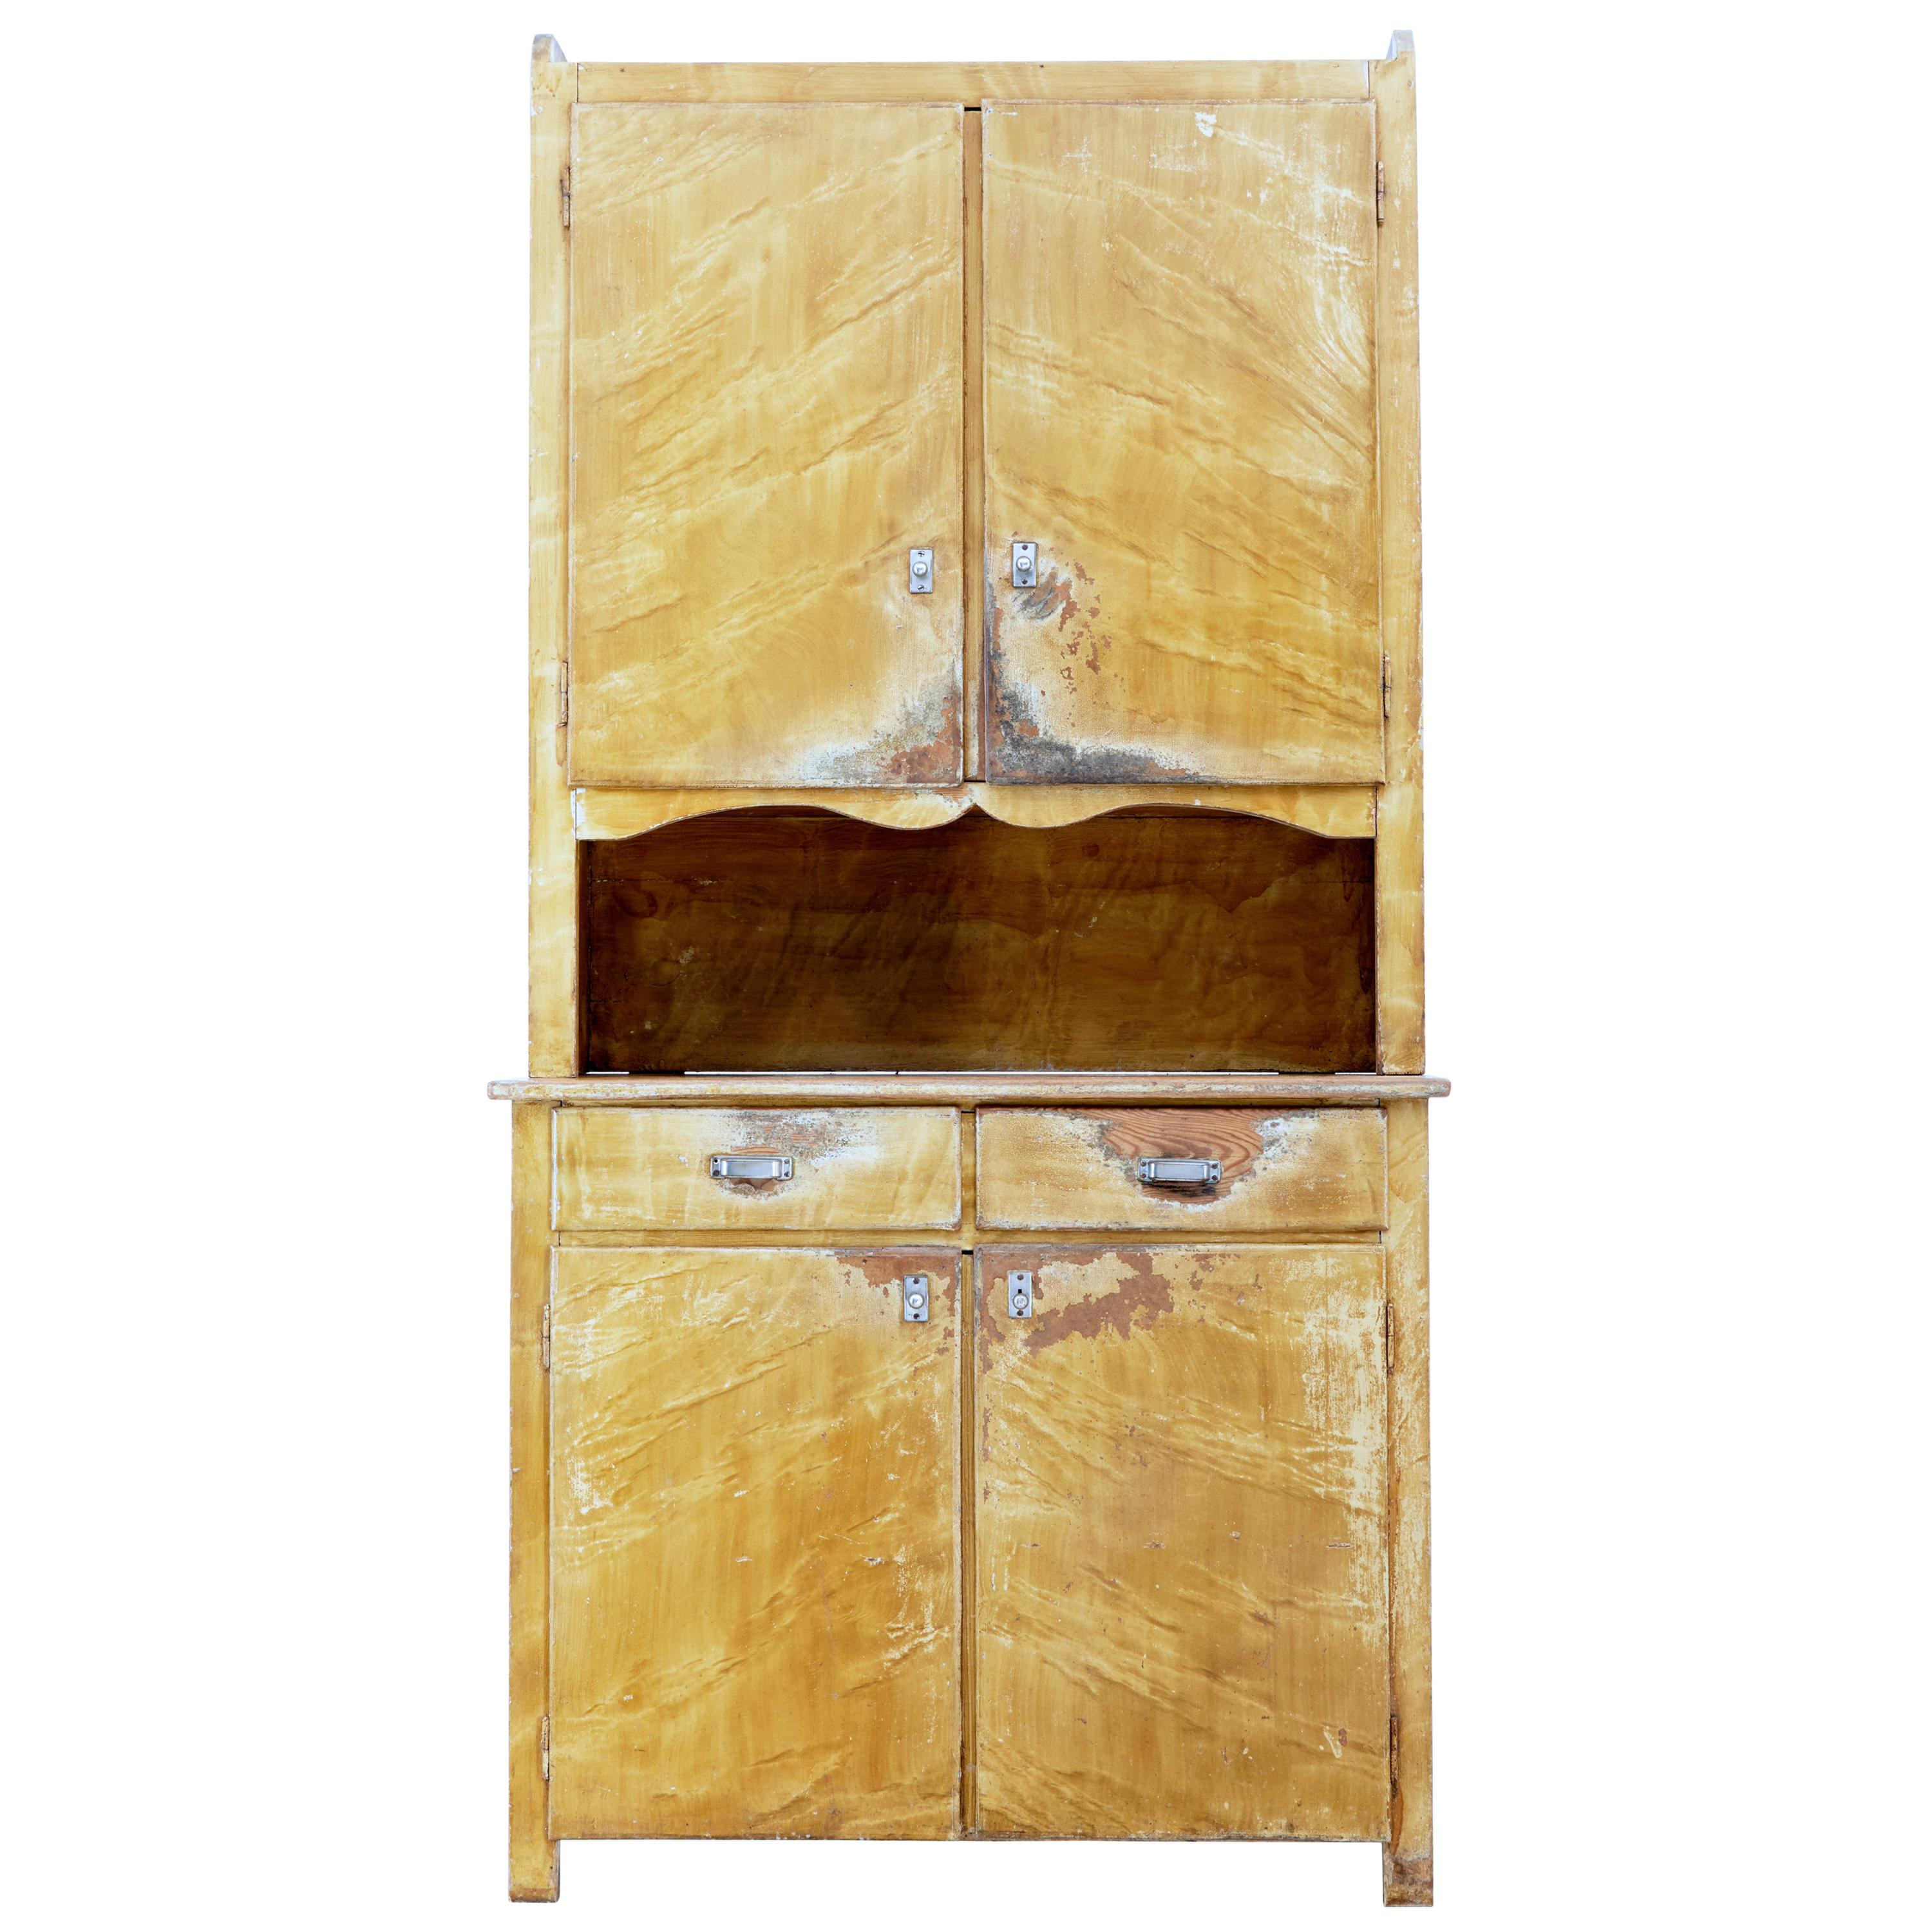 1930s Swedish Pine Distressed Painted Kitchen Cupboard